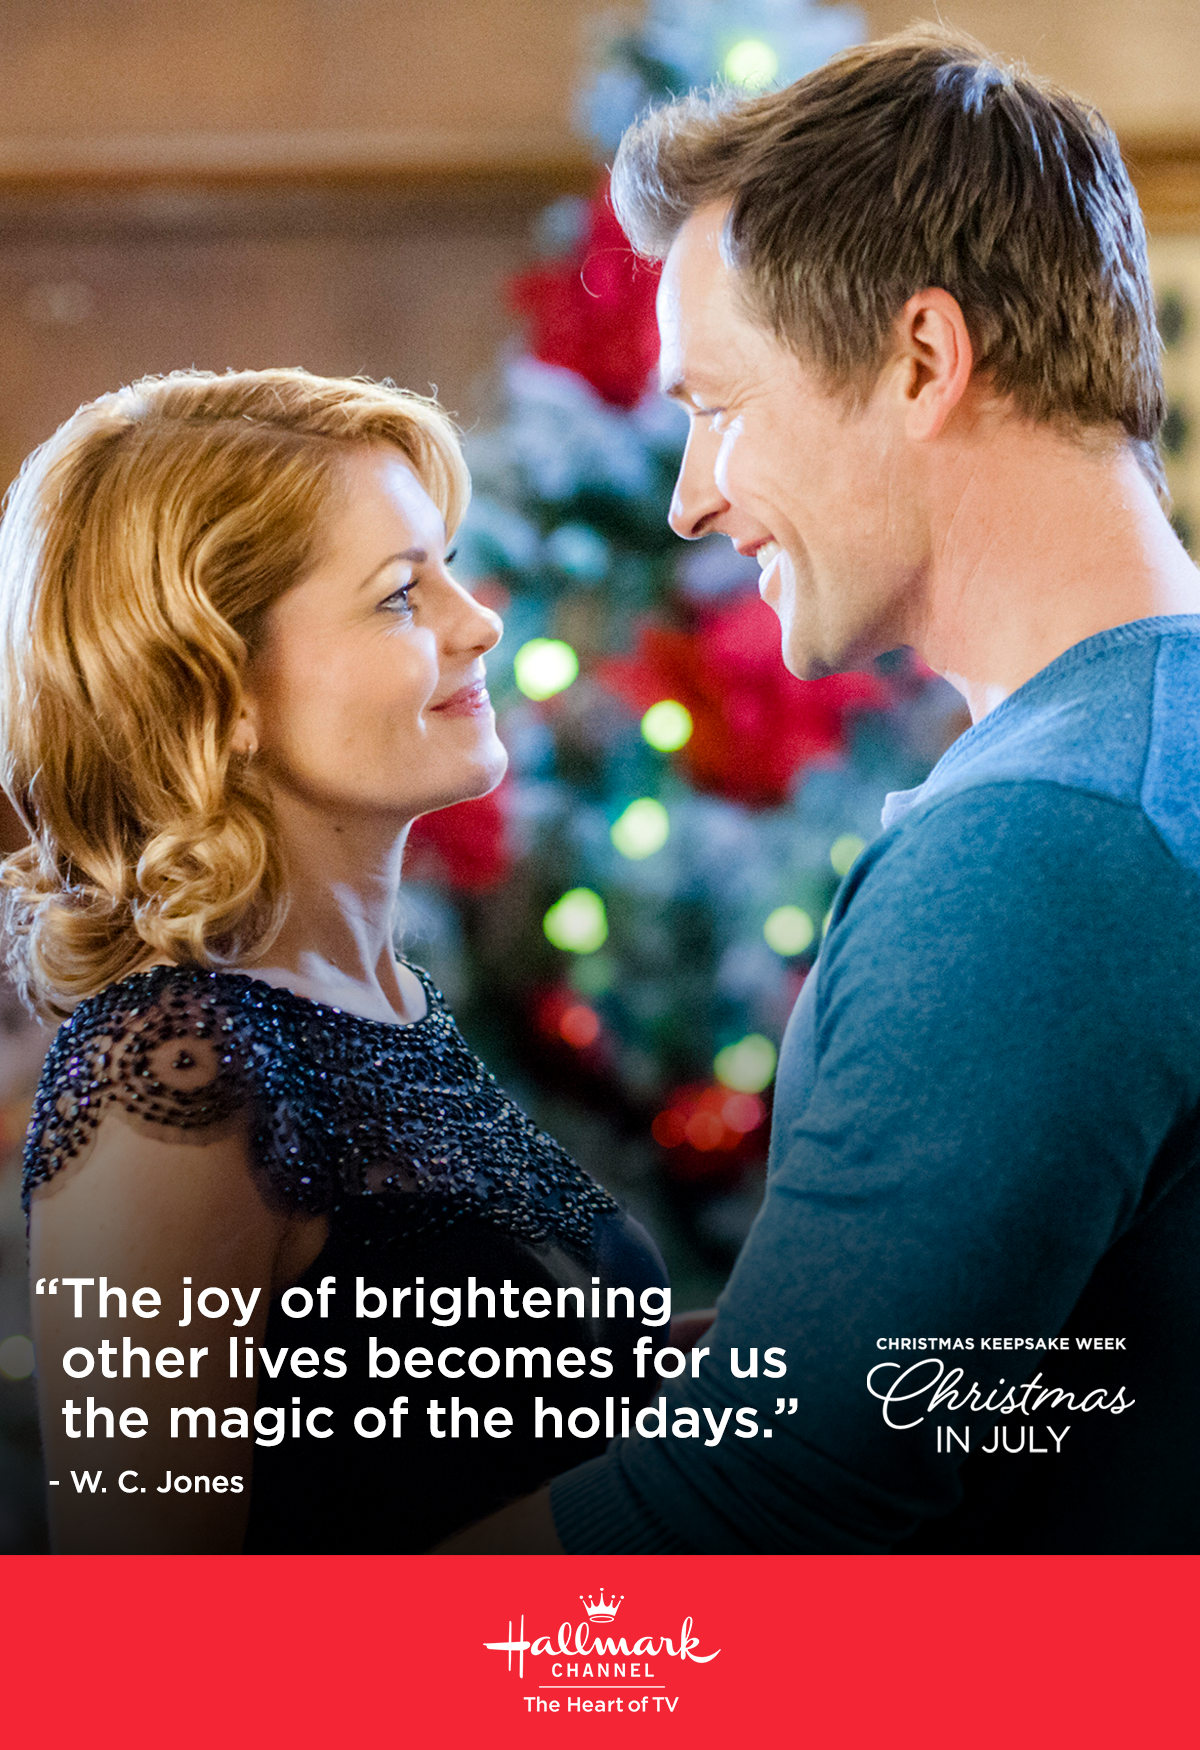 Christmas In July Hallmark.Celebrate Christmas In July On Hallmark Channel With Holiday